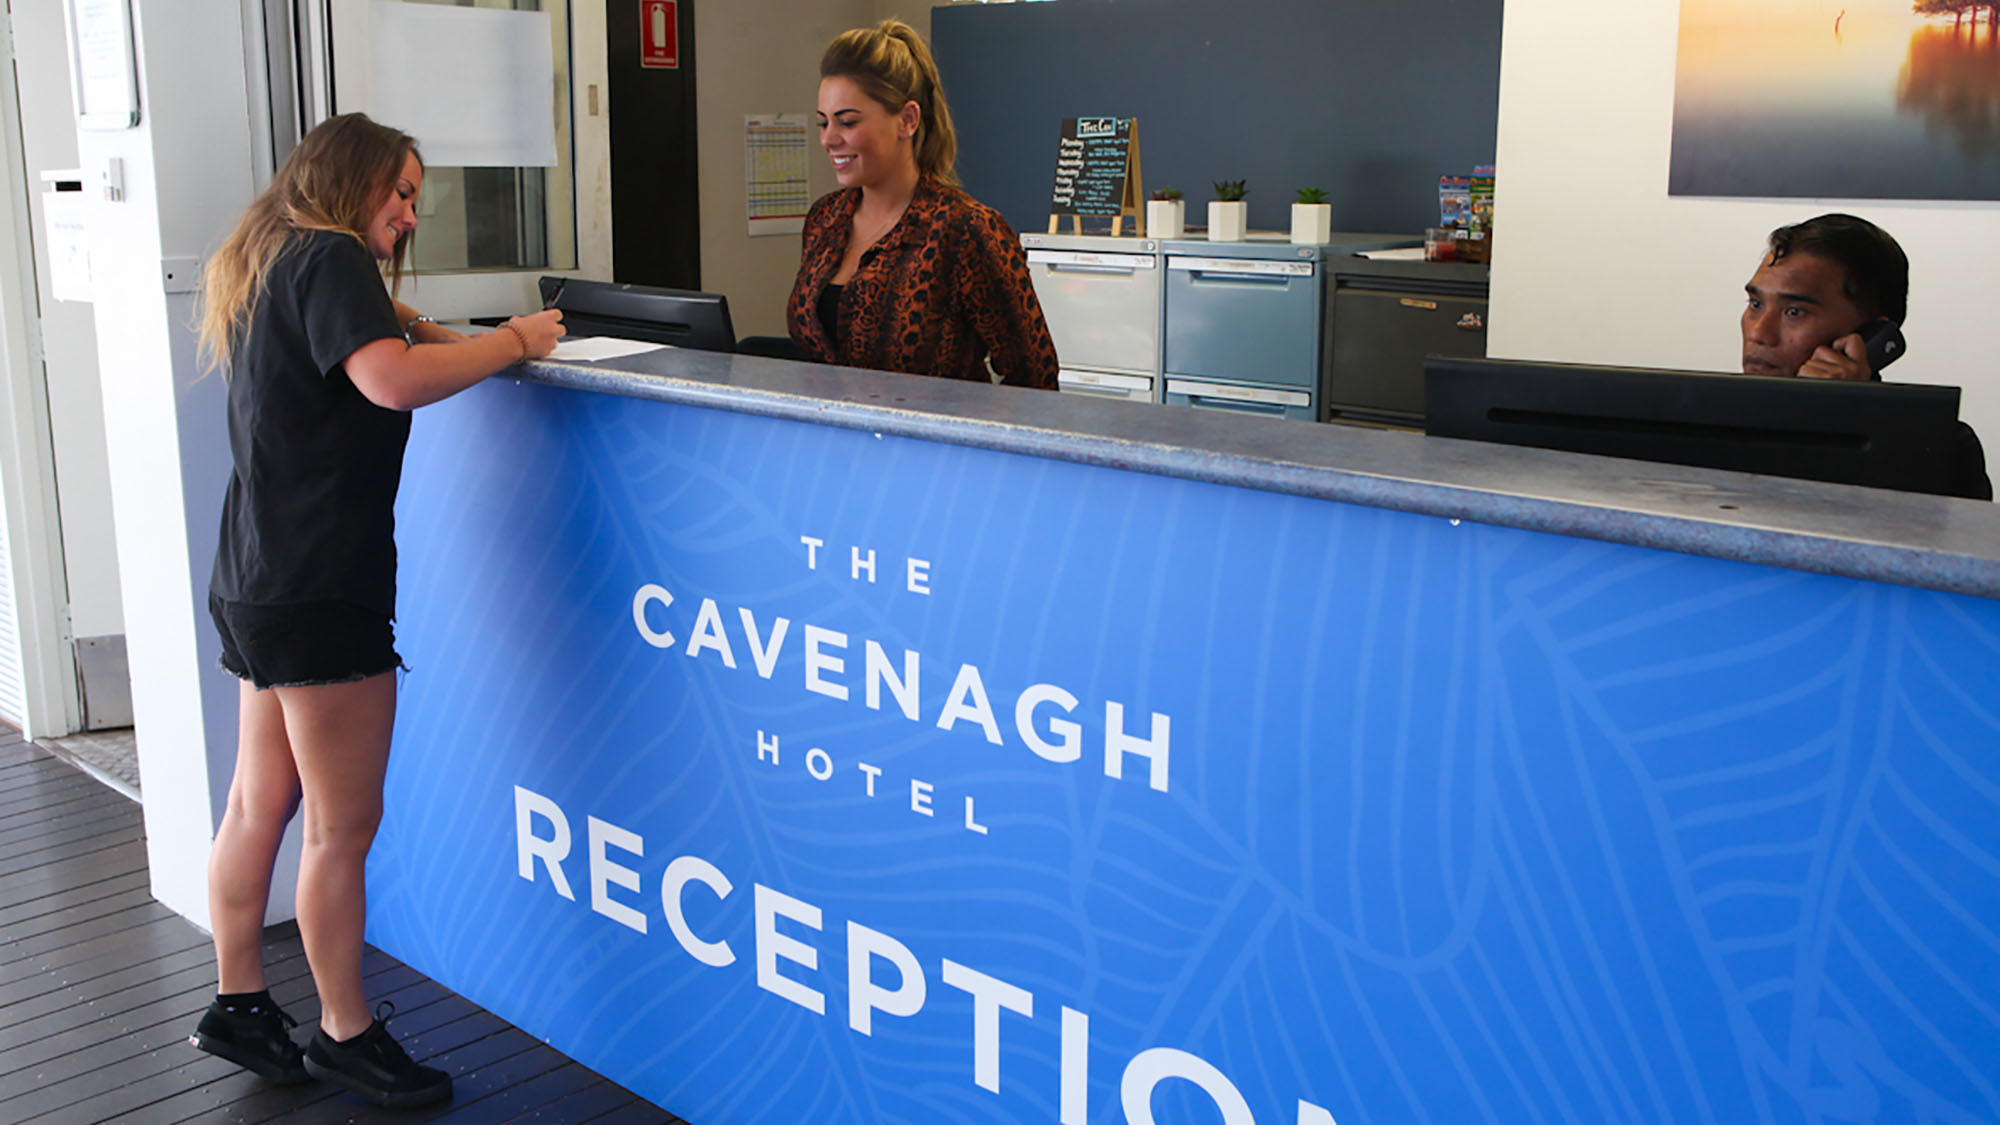 Darwin Budget Short Break at The Cavenagh Hotel - 3, 5, 7 nights